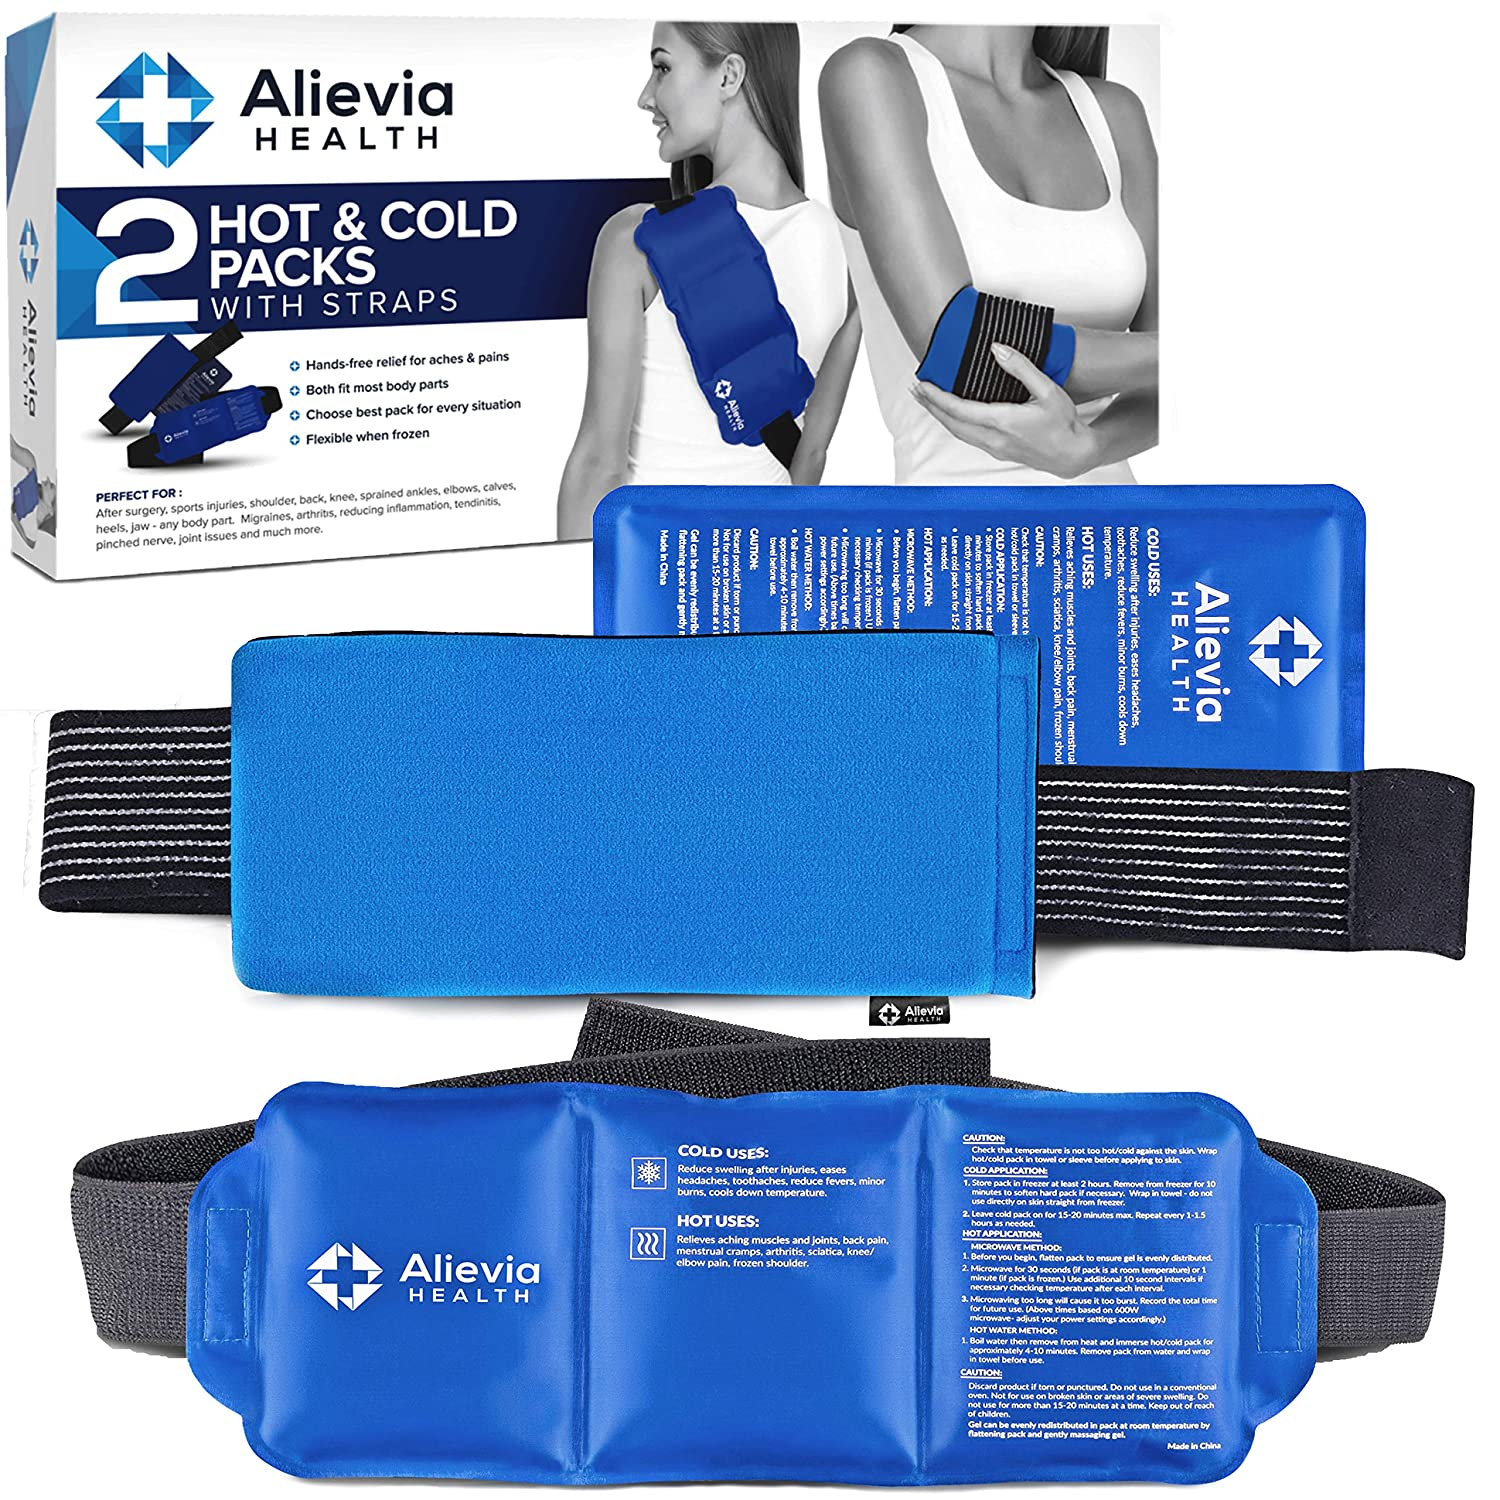 """Ice Packs for Injuries Reusable (Includes 2 Different Packs) Hot & Cold Gel Wraps by Alievia Health, 14""""x6"""" & 11""""x5"""" - Pack for Knee, Back, Shoulder, Elbow, Ankle, Neck- Heat Therapy for Pain, Large"""